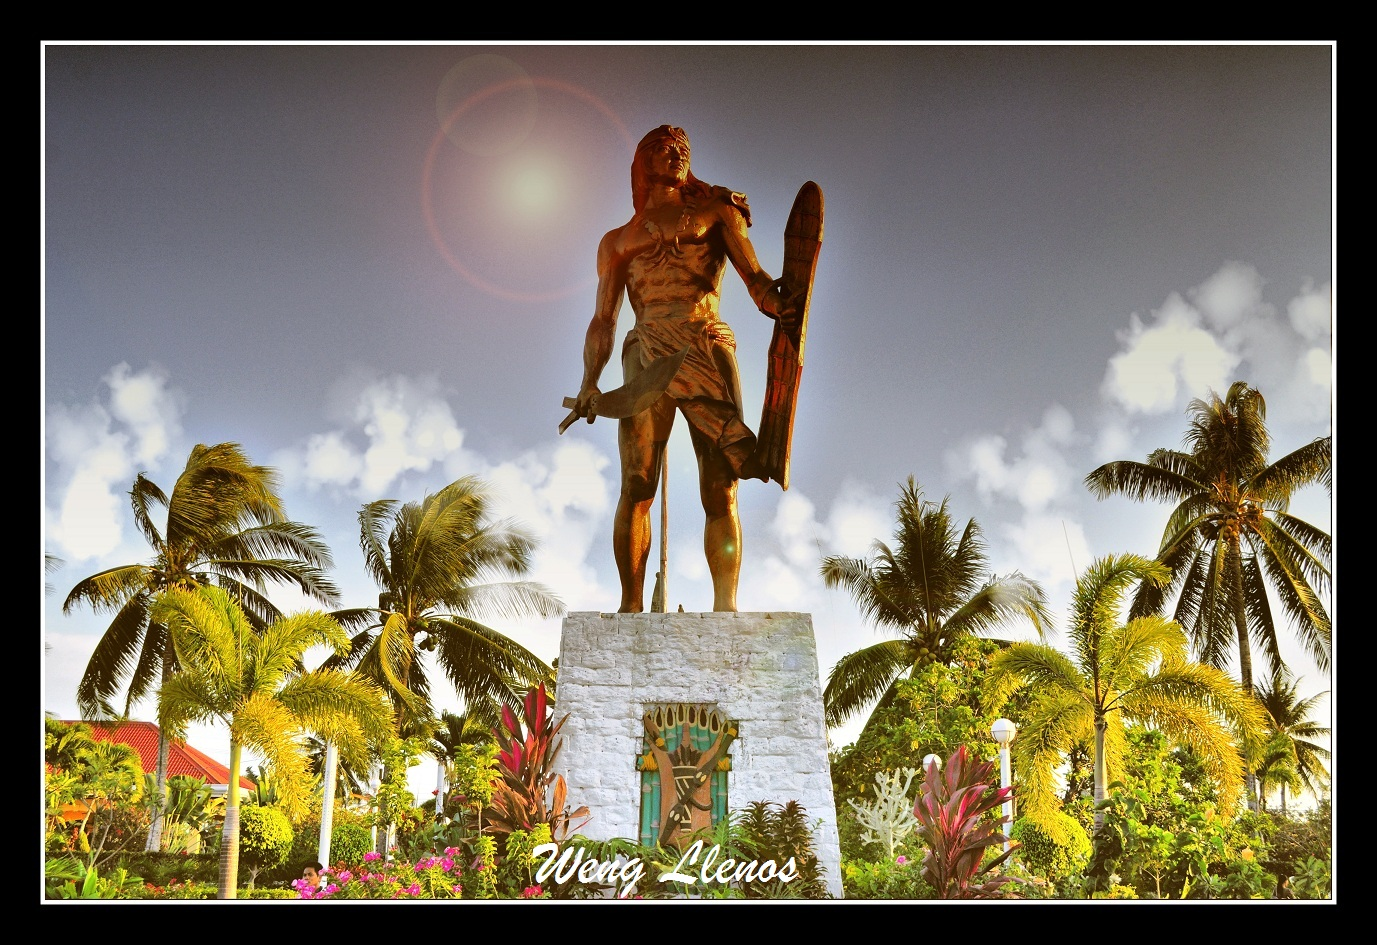 the battle of mactan Kadaugan sa mactan is a historic battle against foreign invasion on the island of mactan, cebu aside from re-enacting the event, it celebrates courage, culture and present life of the locals.